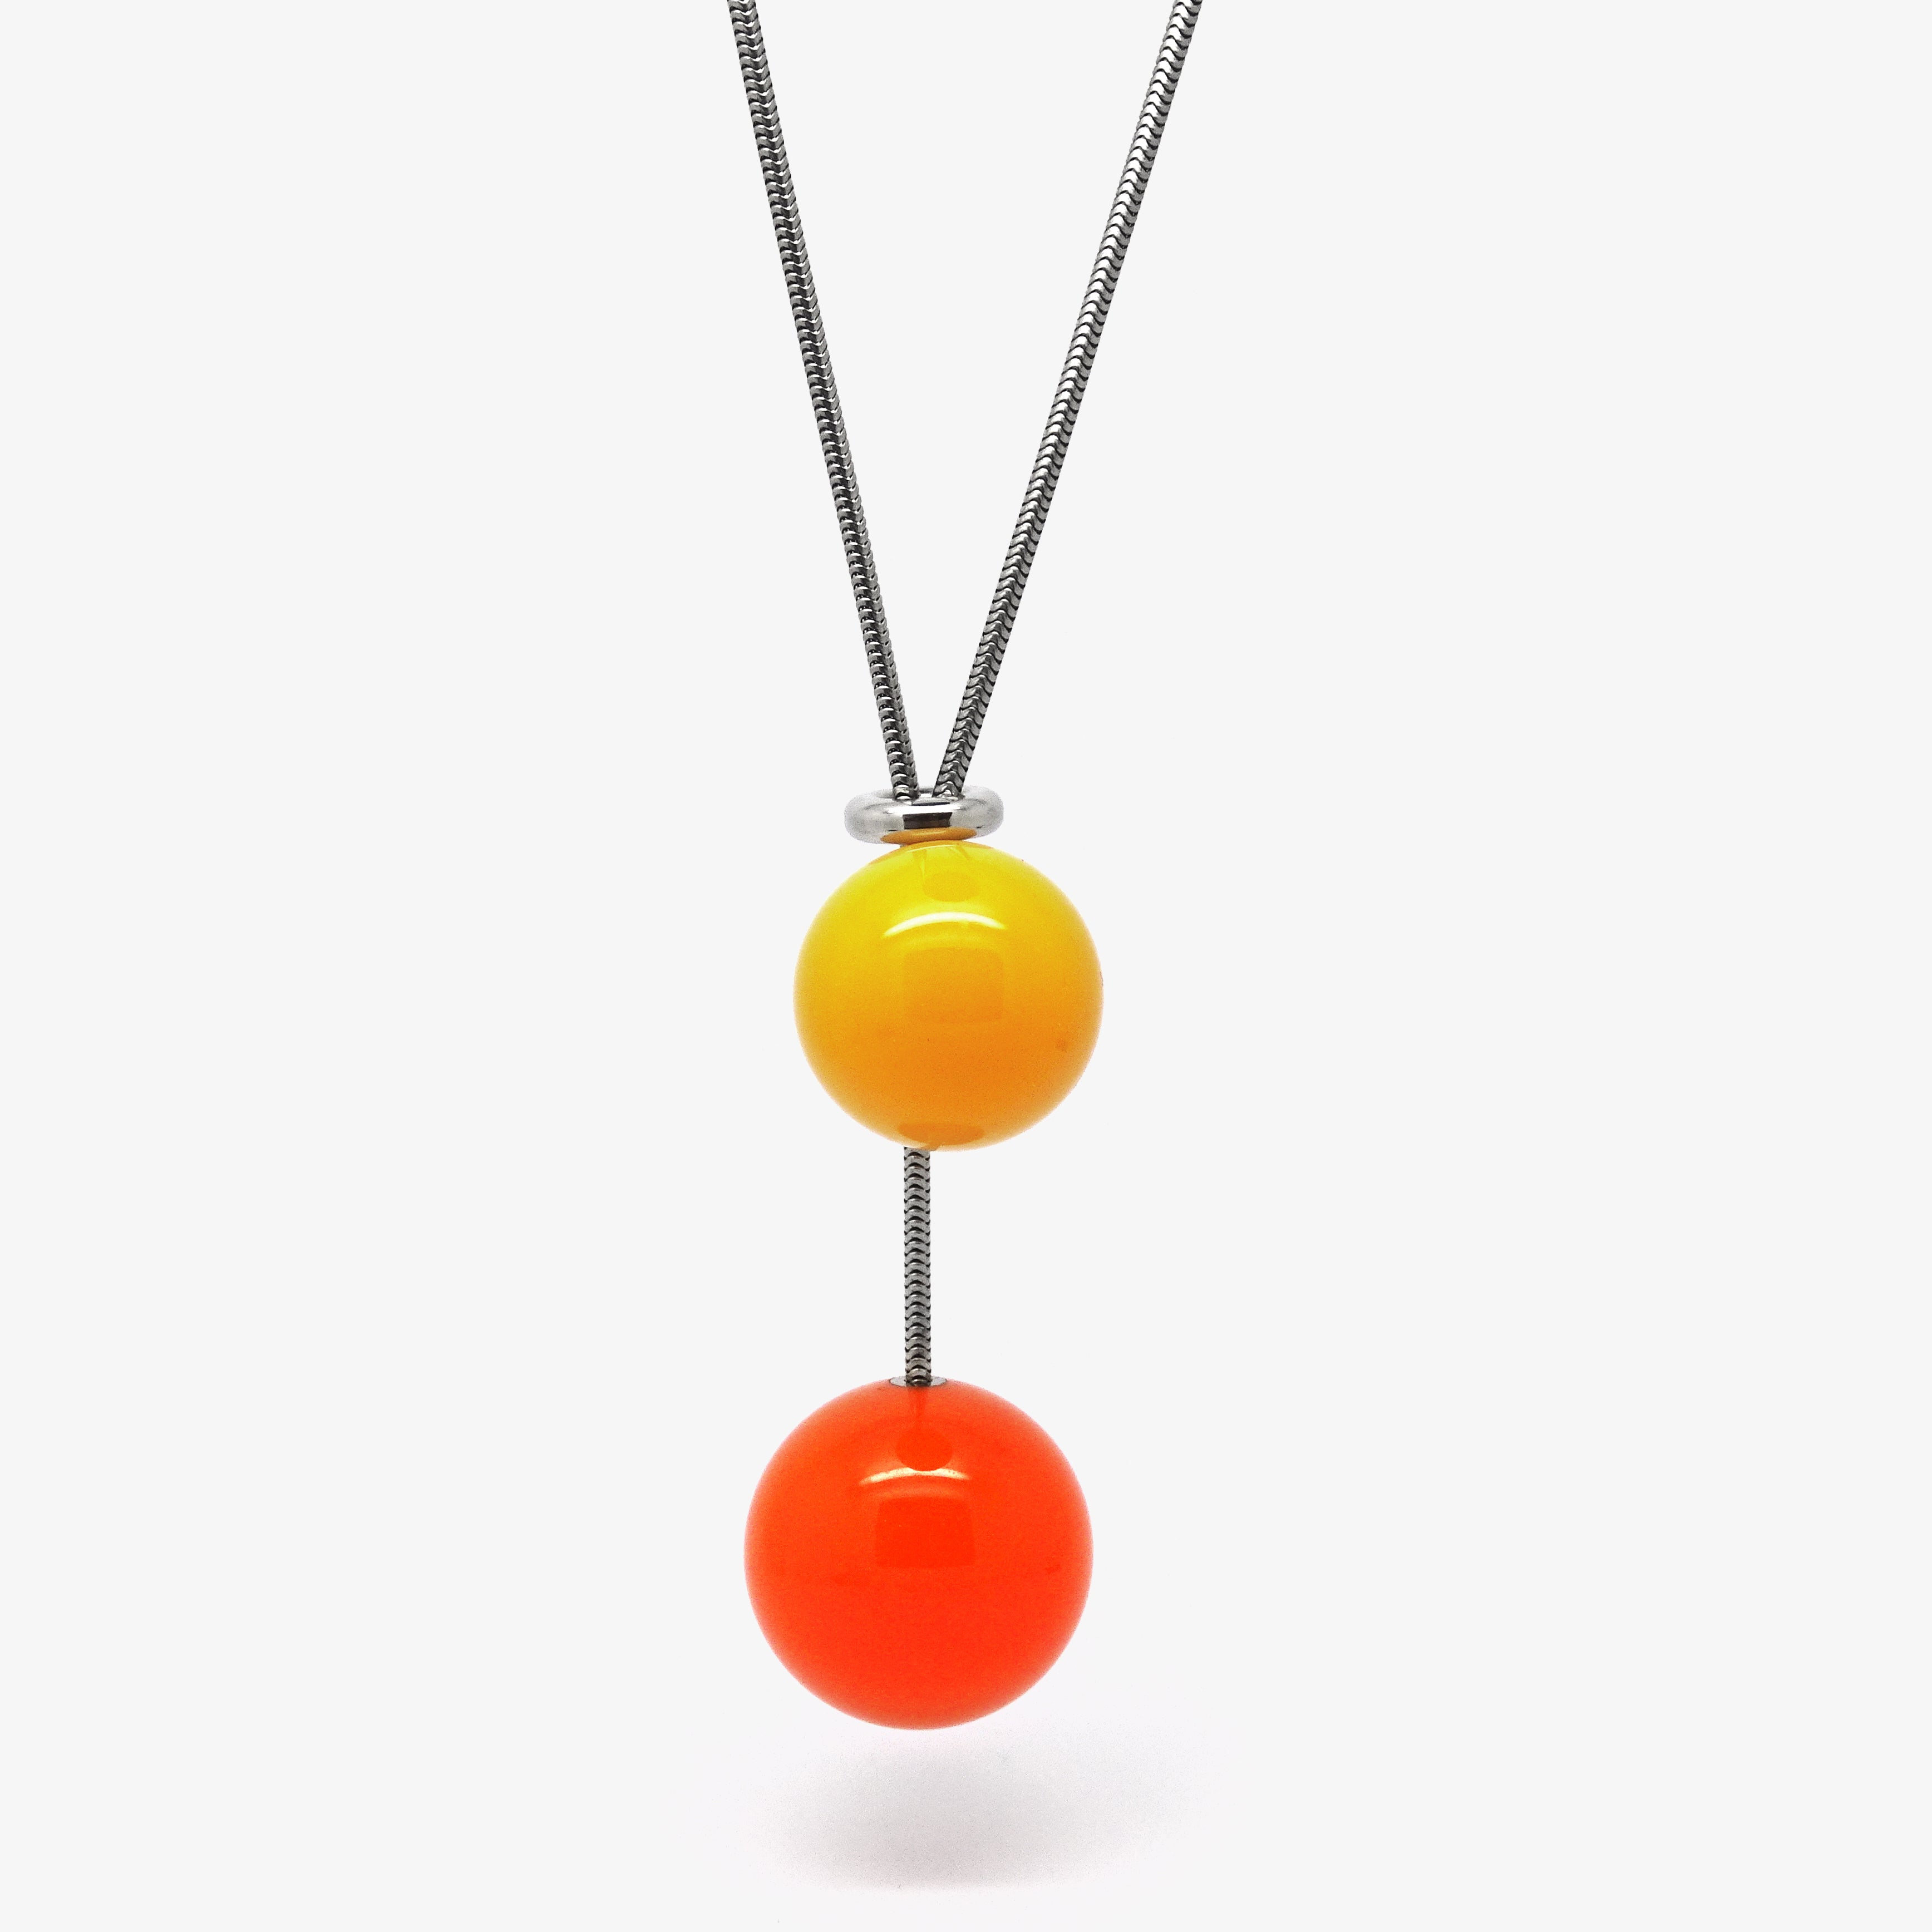 DOUBLE BALL NECKLACE - ORANGE & YELLOW